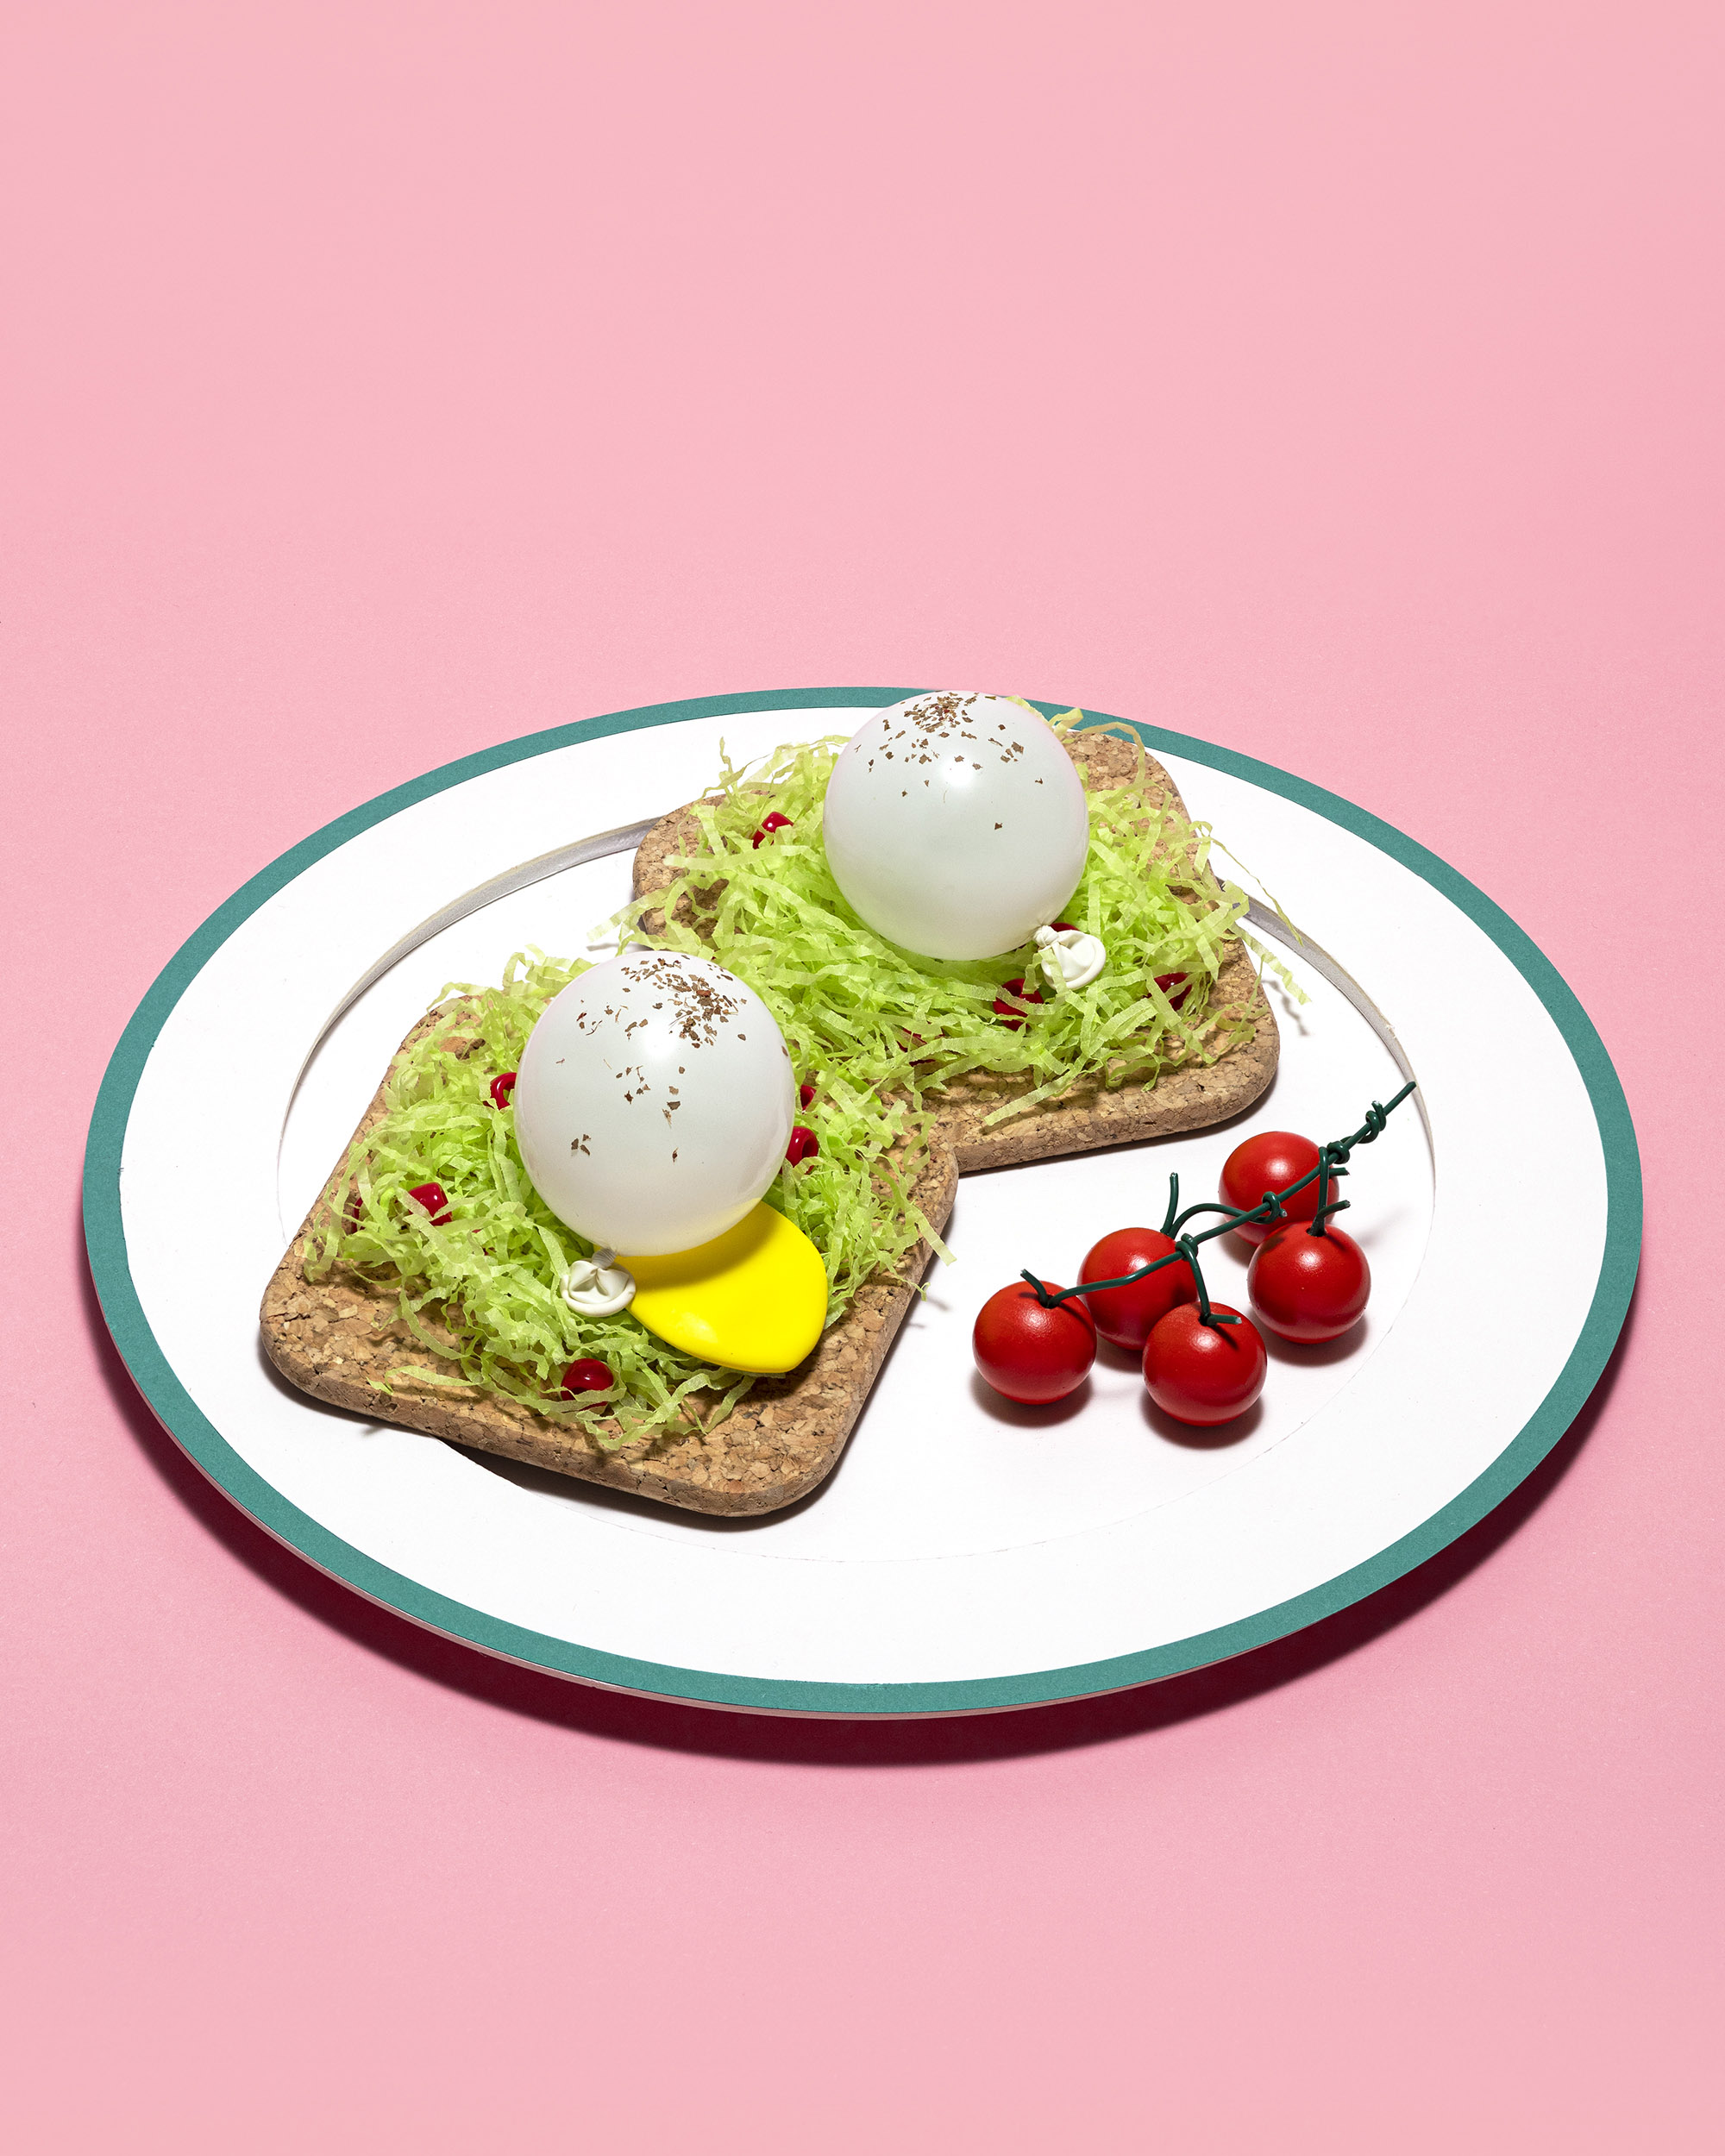 Today's Meal: Smashed Avocado on Toast